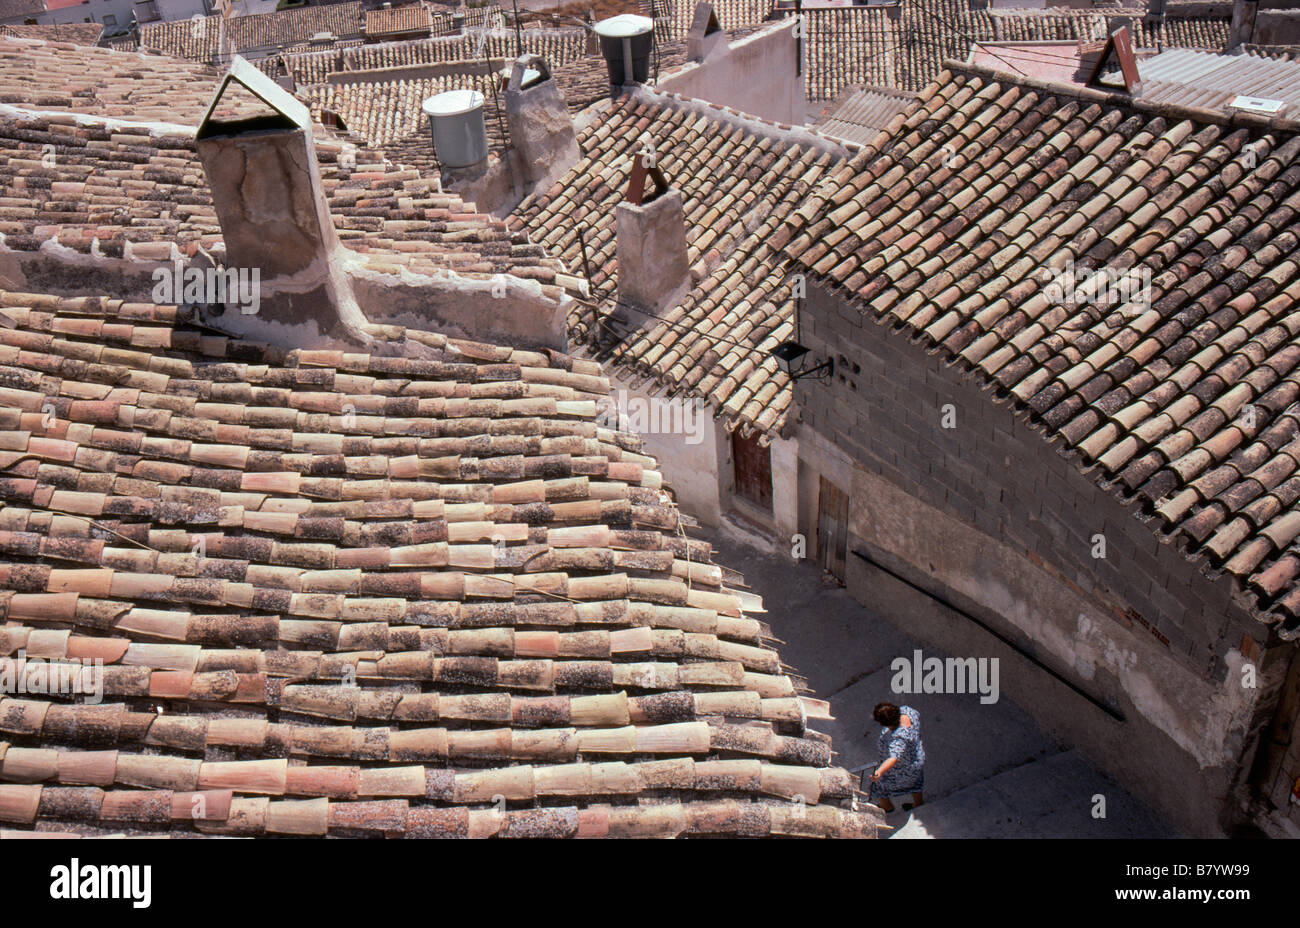 Looking down on the rooftops of Cehegin in Murcia Province Southern Spain - Stock Image